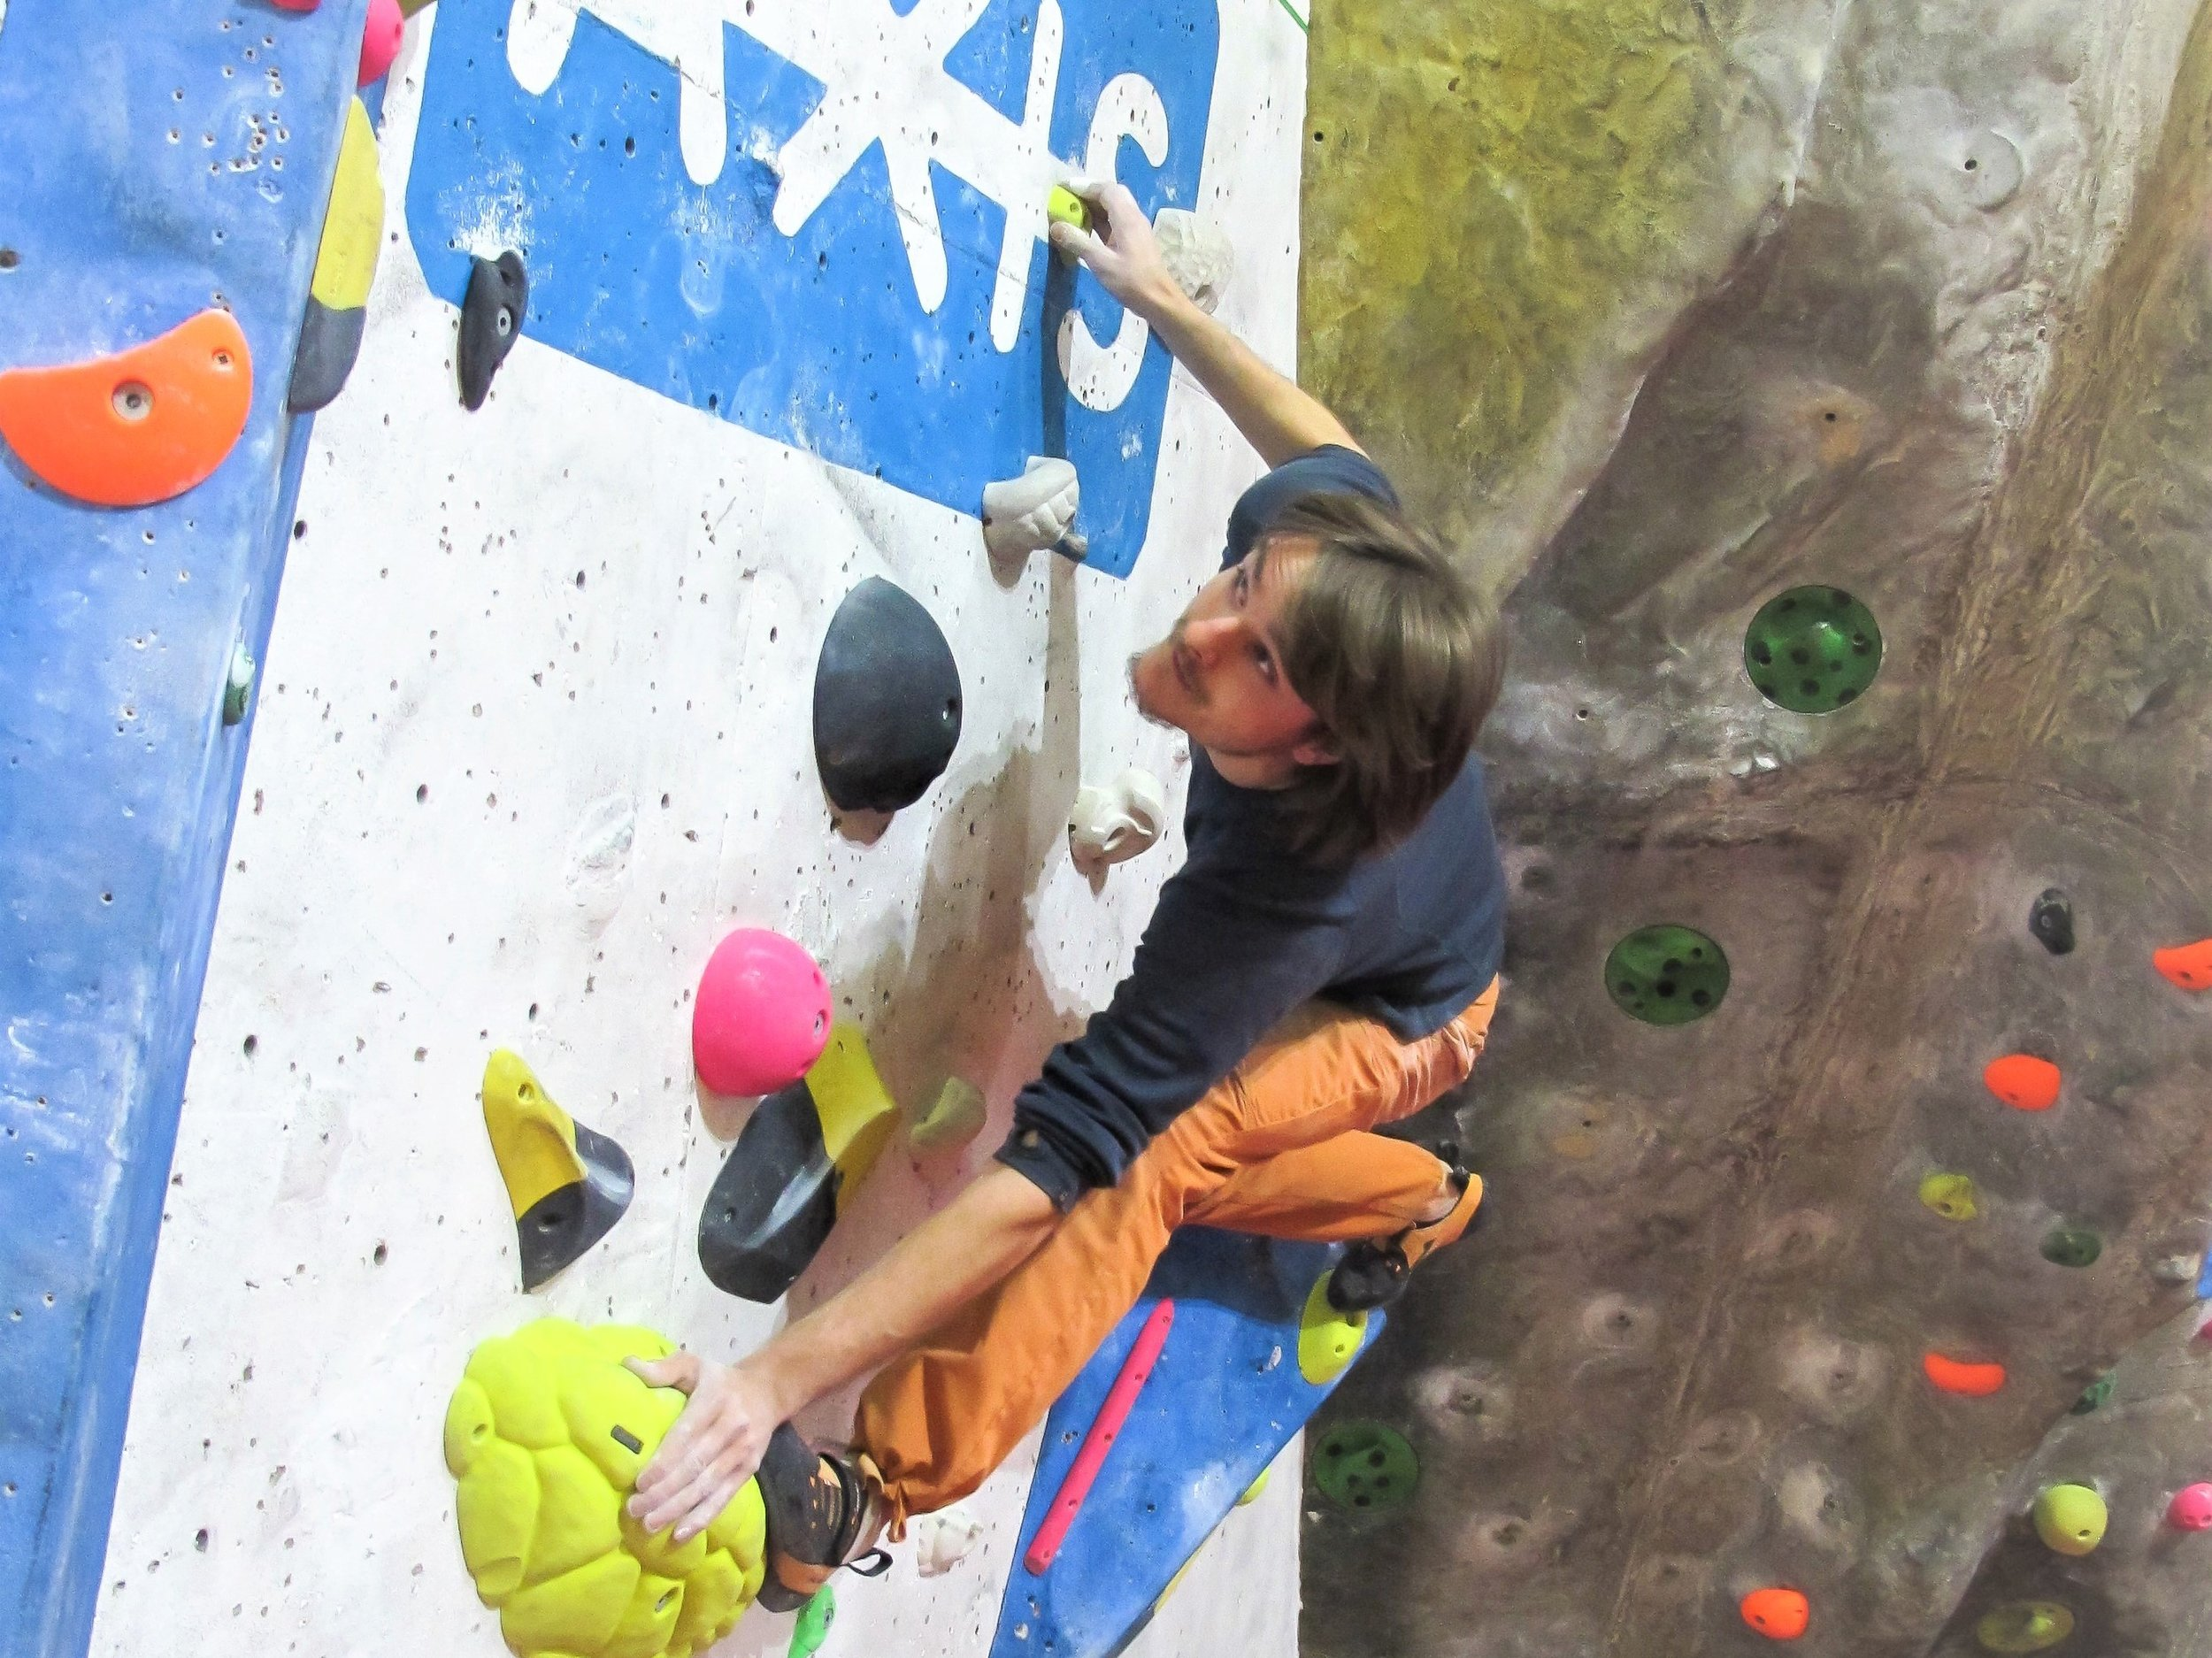 Become a Member - To climb at the Foundry without an instructor or supervising climber you must become a Foundry member. You will need to have the skills and knowledge to ensure you can participate in the activity without endangering or hurting yourself or others.